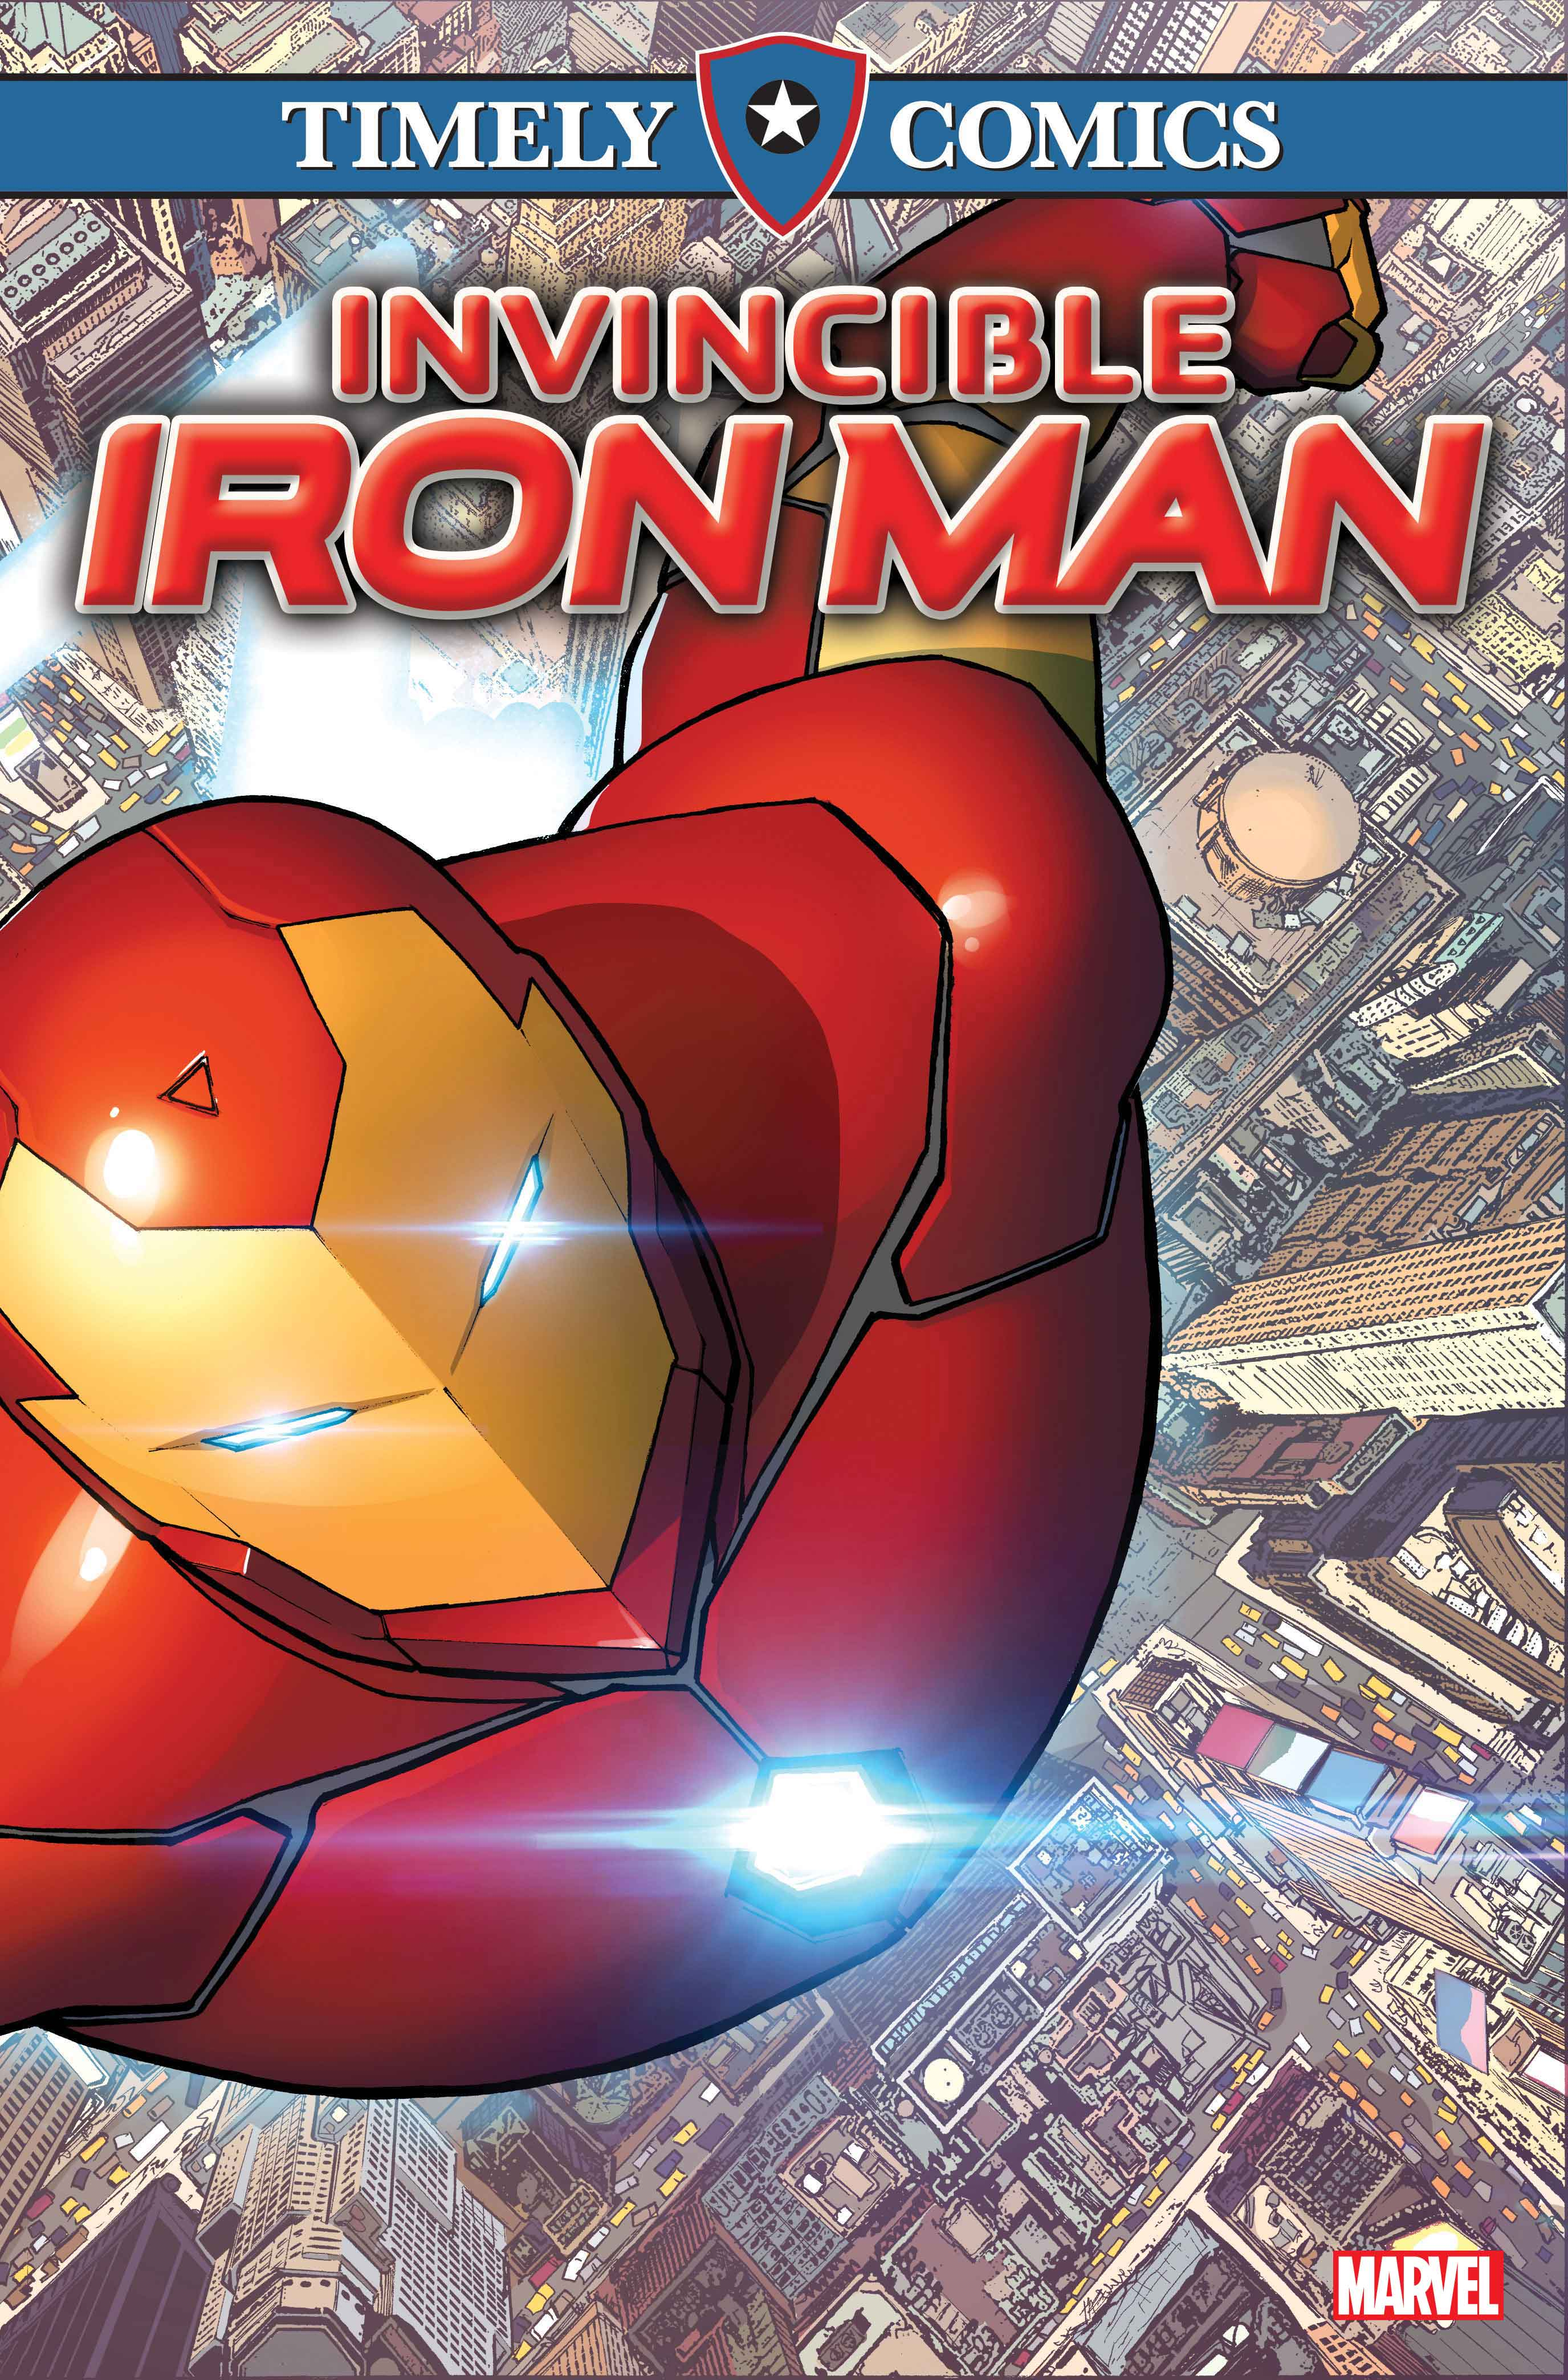 Timely Comics: Invincible Iron Man